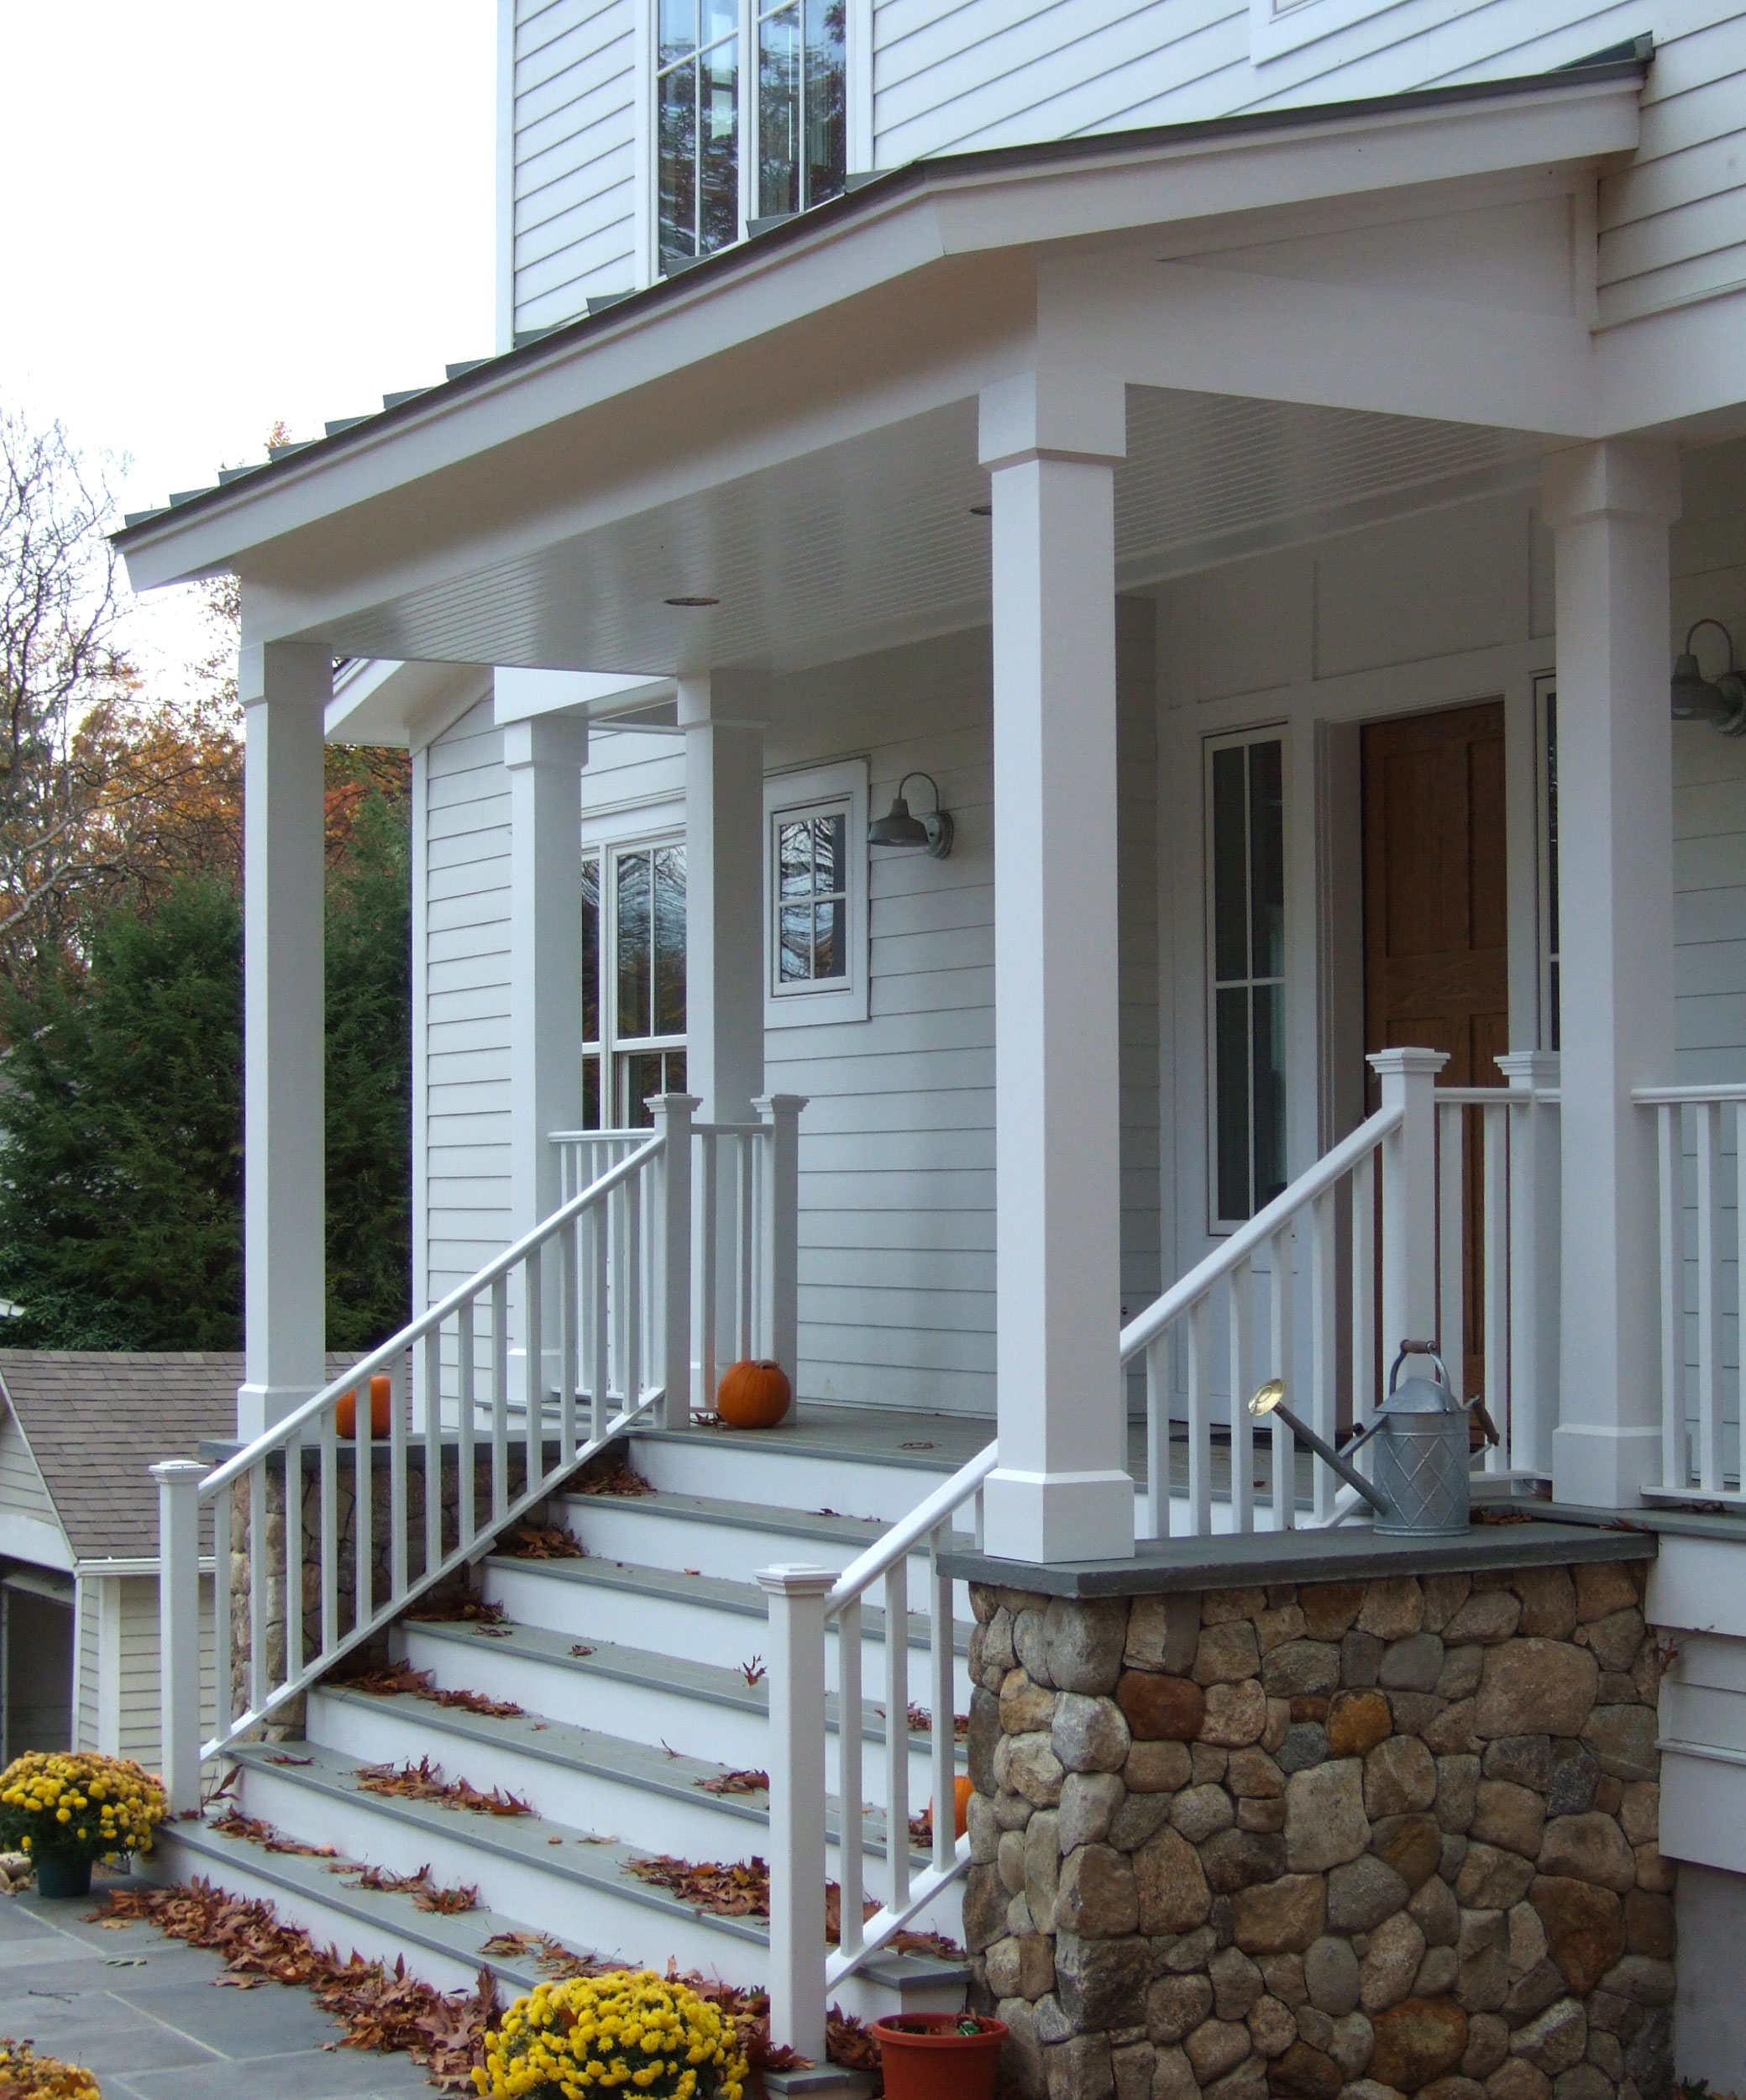 Westport-farmhouse-front-porch-angled.jpg